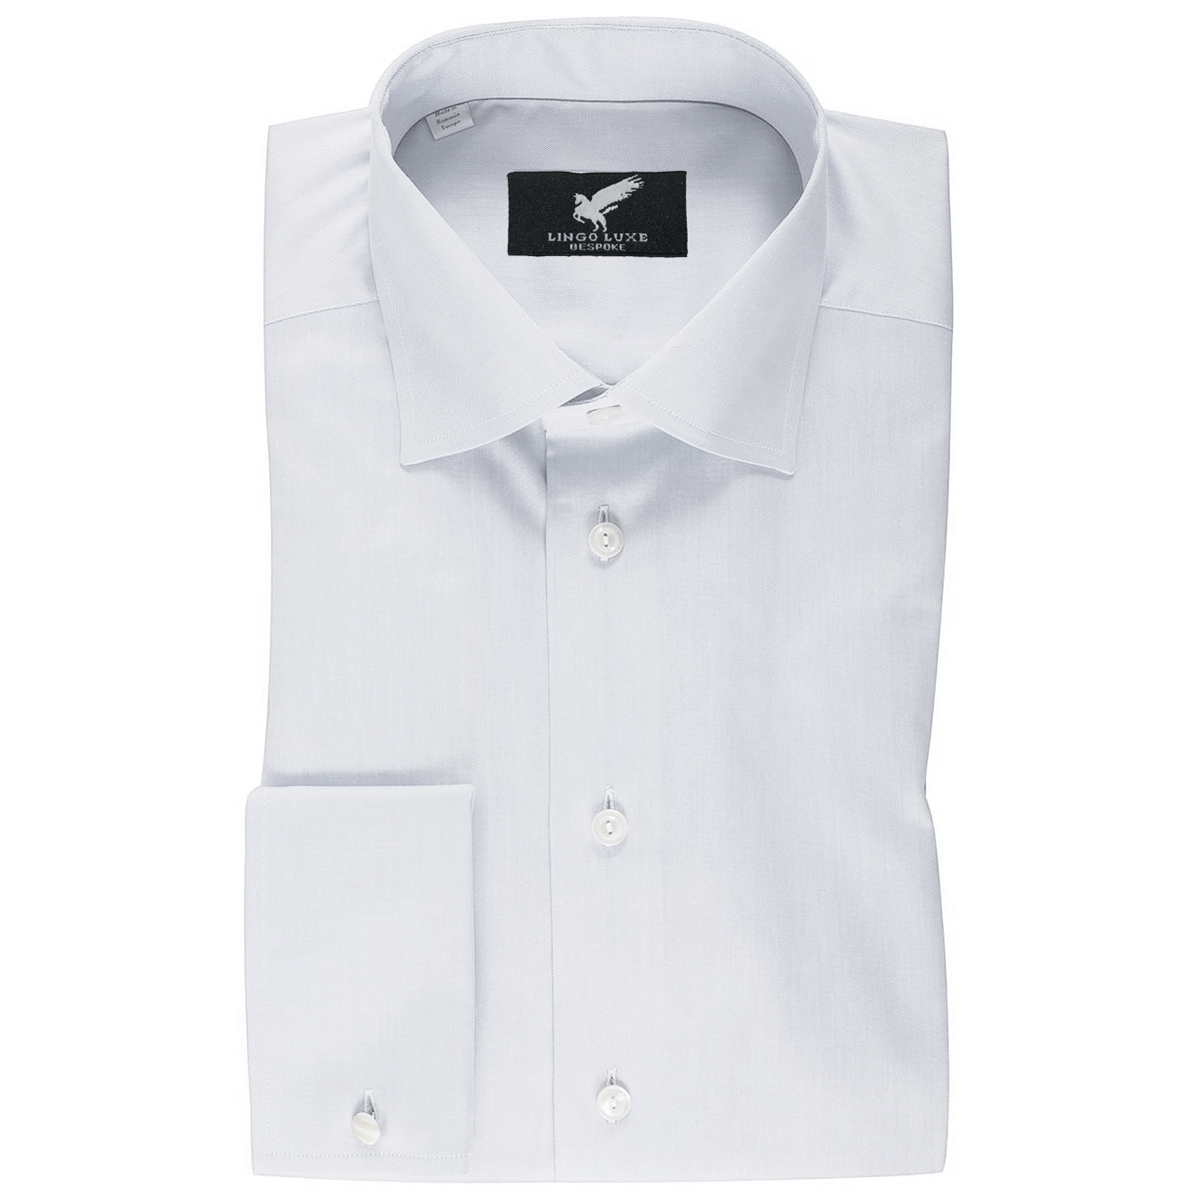 Men's Business Basics Shirt | Lingo Luxe White-Lingo Luxe Bespoke